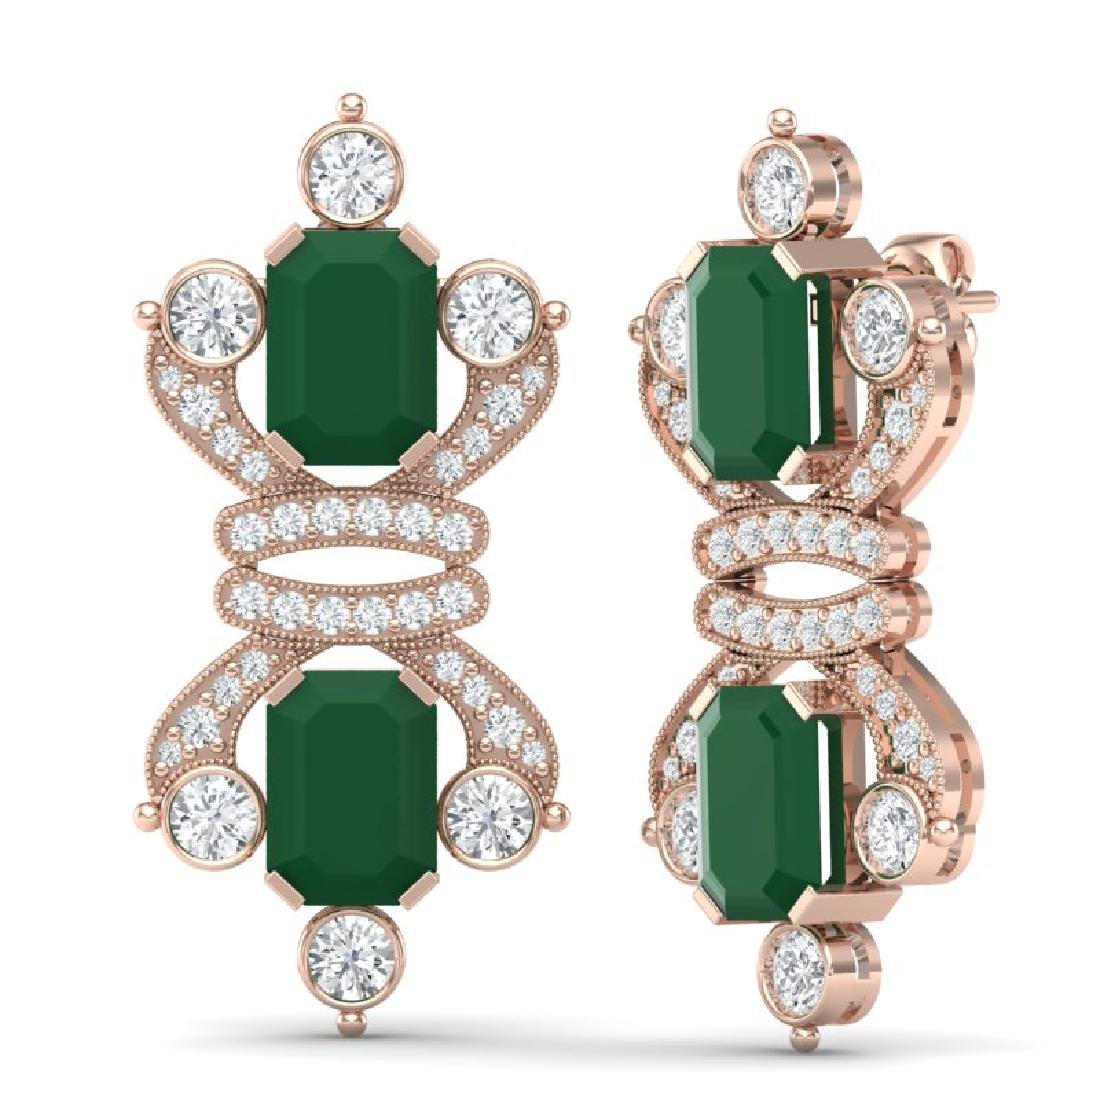 27.36 CTW Royalty Emerald & VS Diamond Earrings 18K - 3